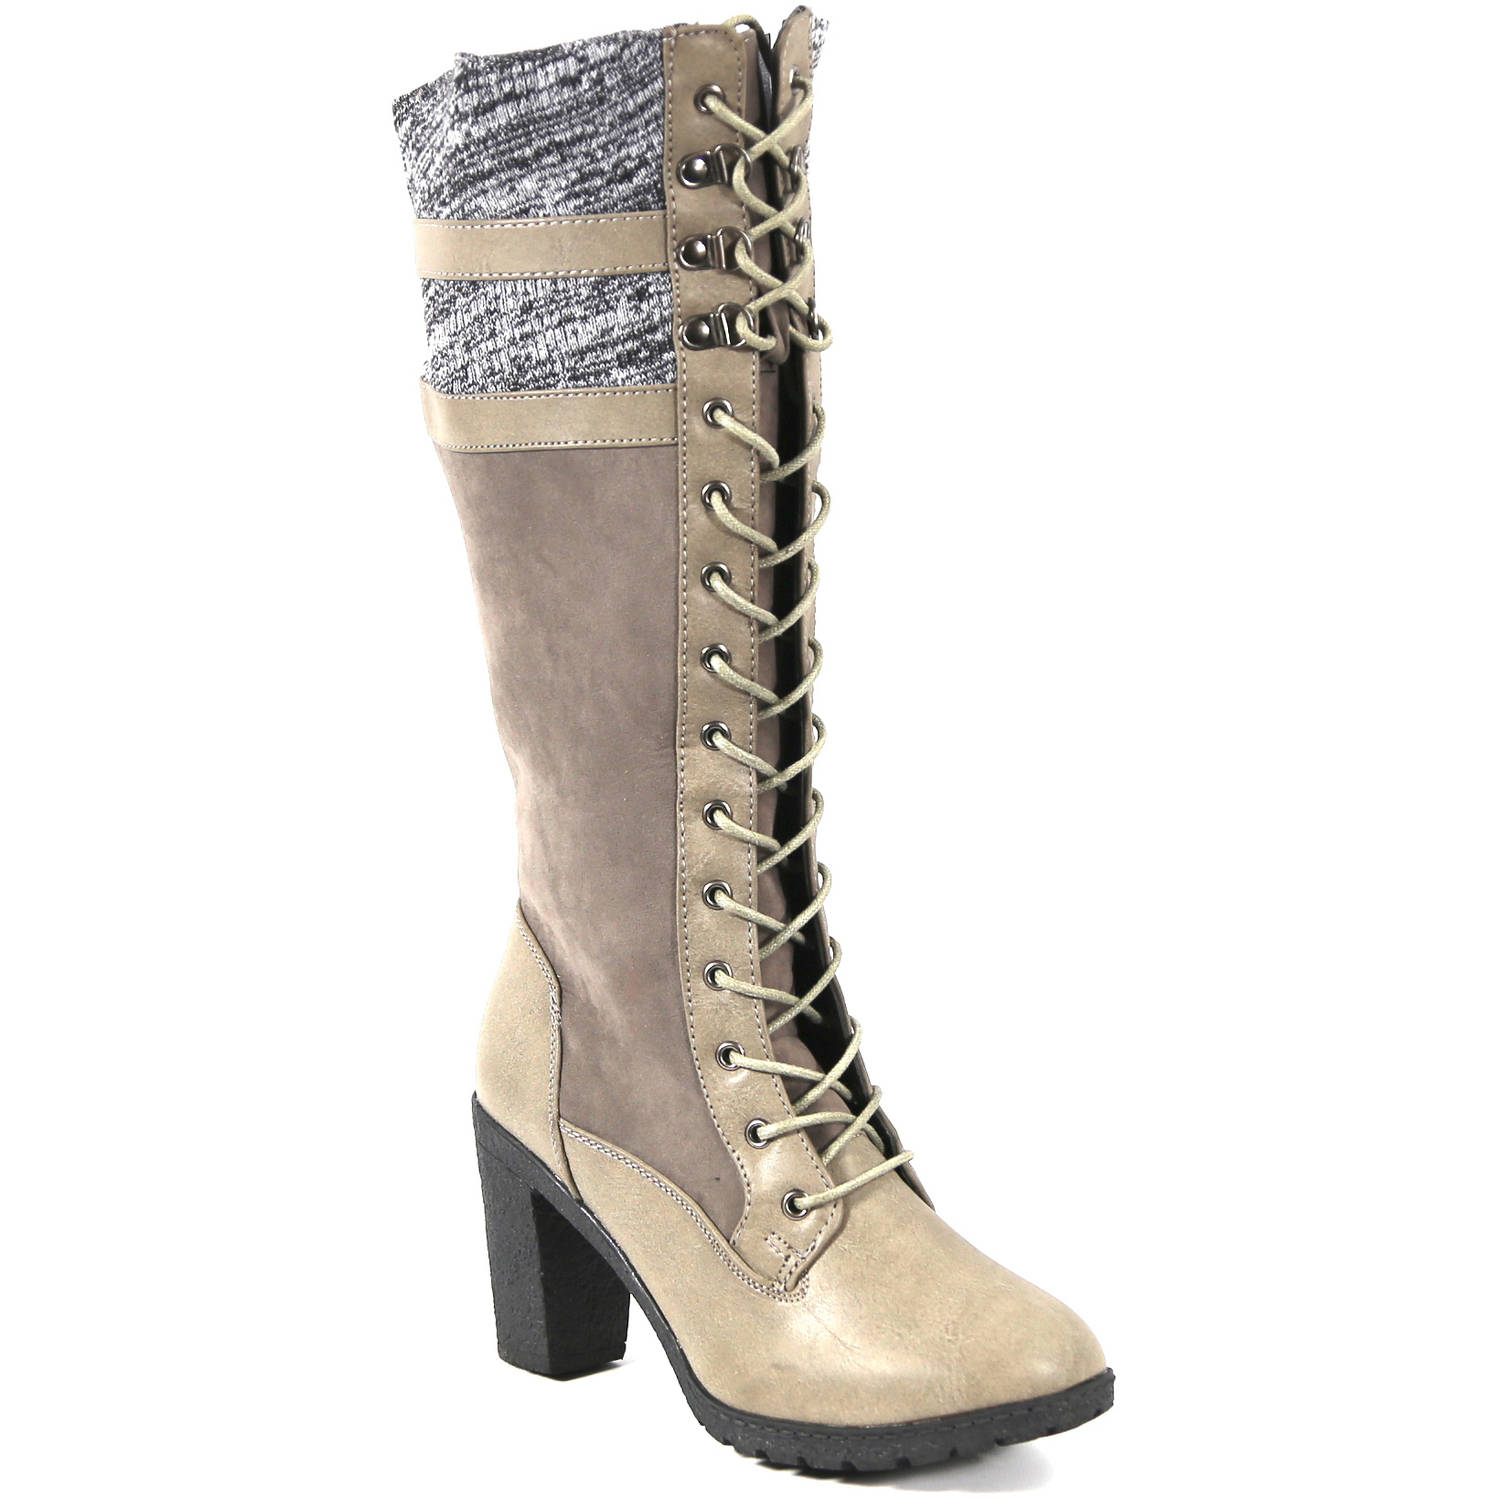 Carrini CA Collection Women's Fashion Knit Cuff Lace-Up Boots